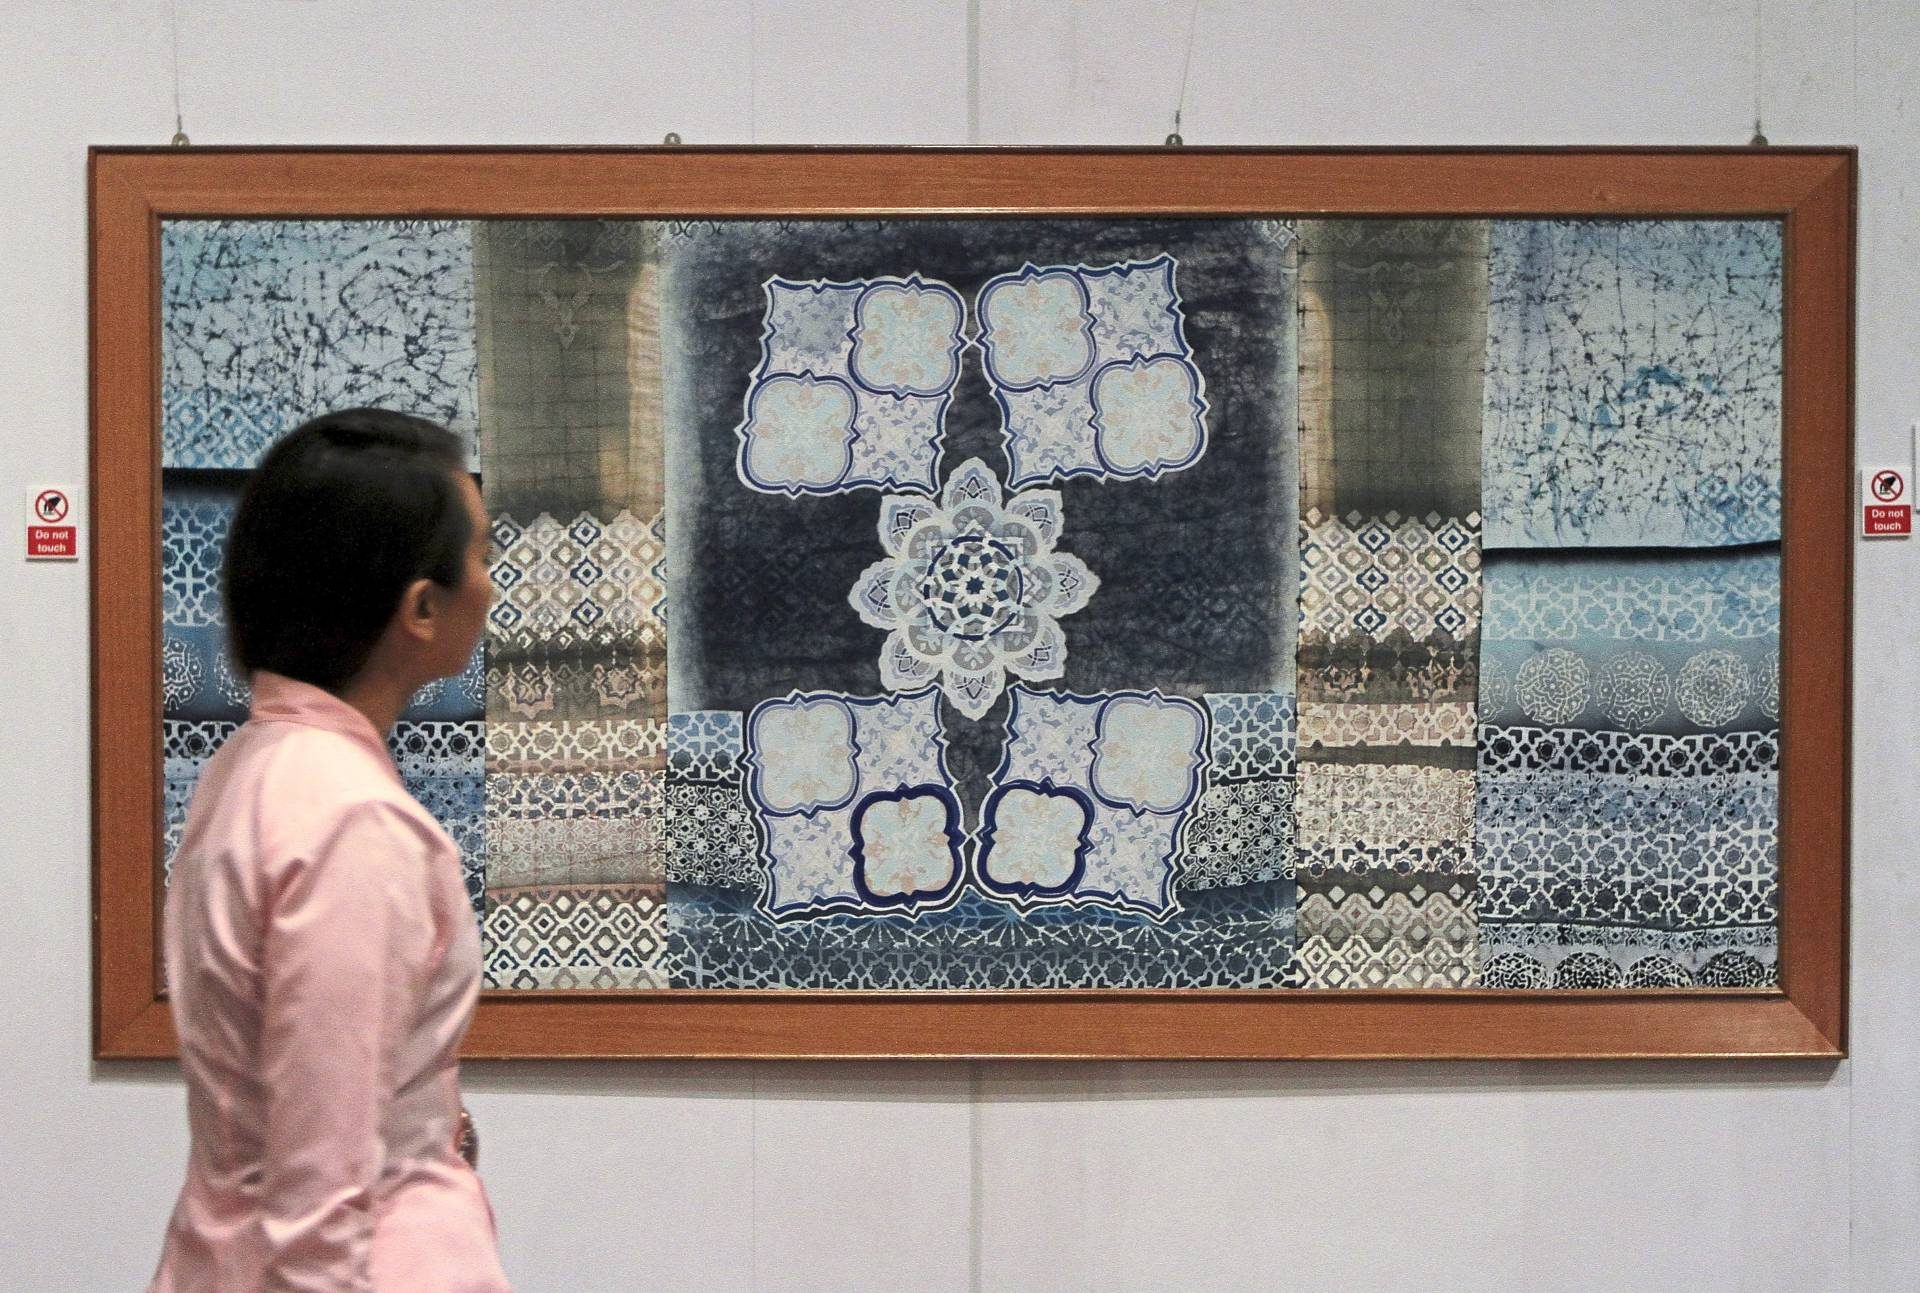 An exhibit featuring ferns and flower motifs created by a hand-drawn technique on cotton fabric. Photo: The Star/Yap Chee Hong